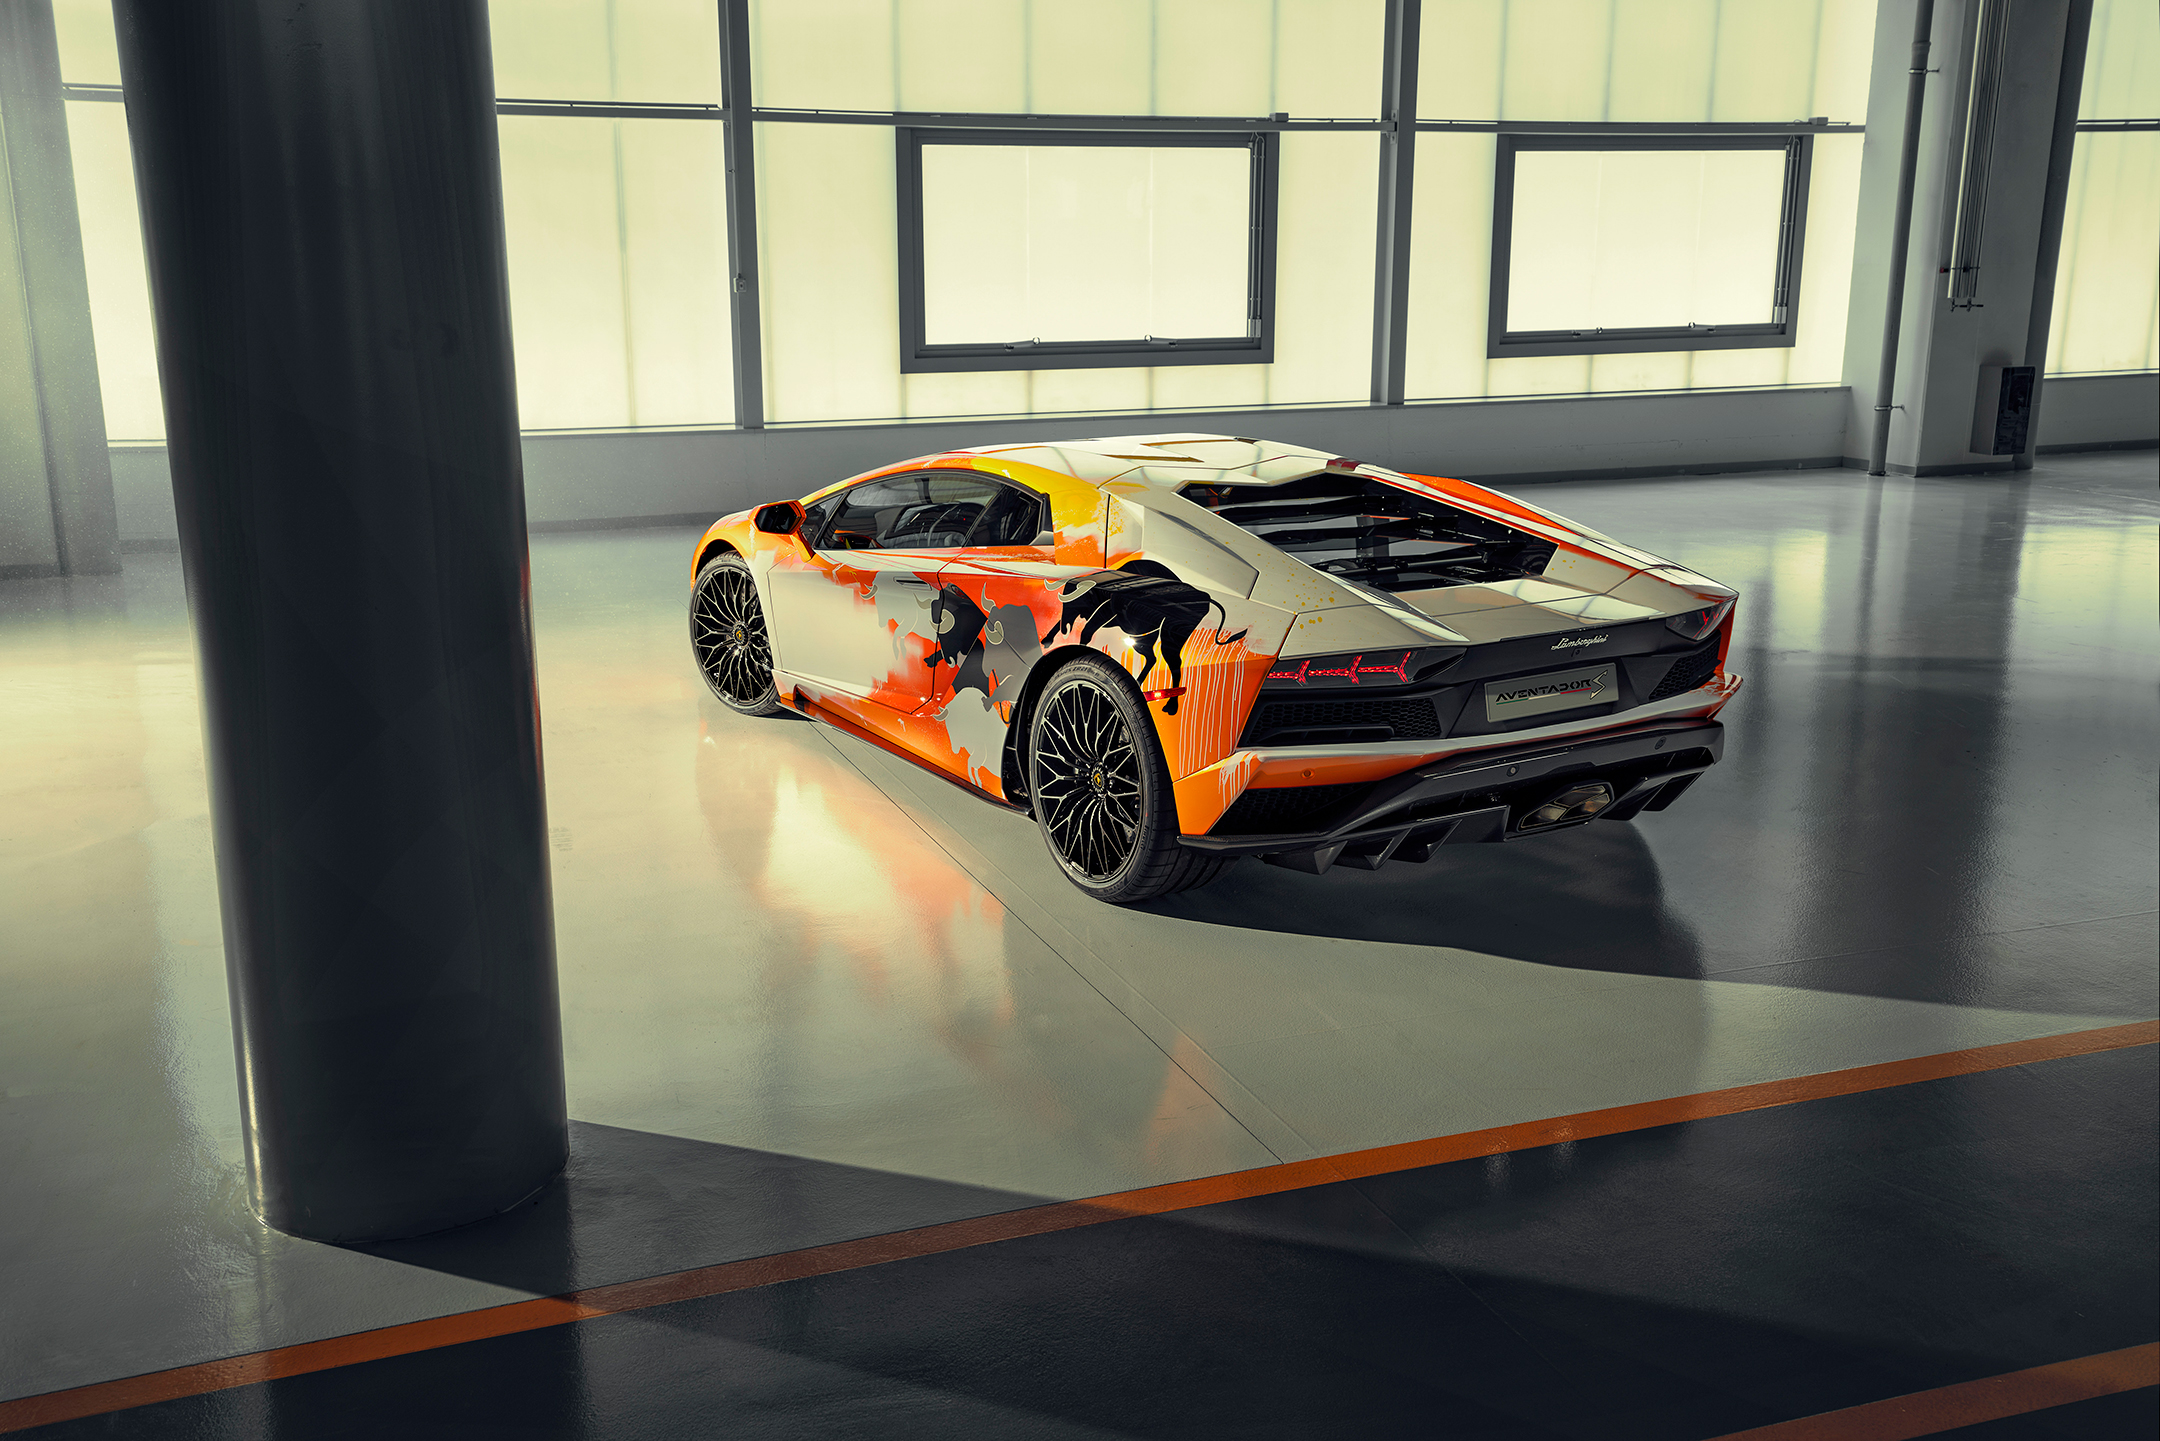 Lamborghini one-off Aventador S by Skyler Grey Art - 2019 - top - rear-face / face arrière